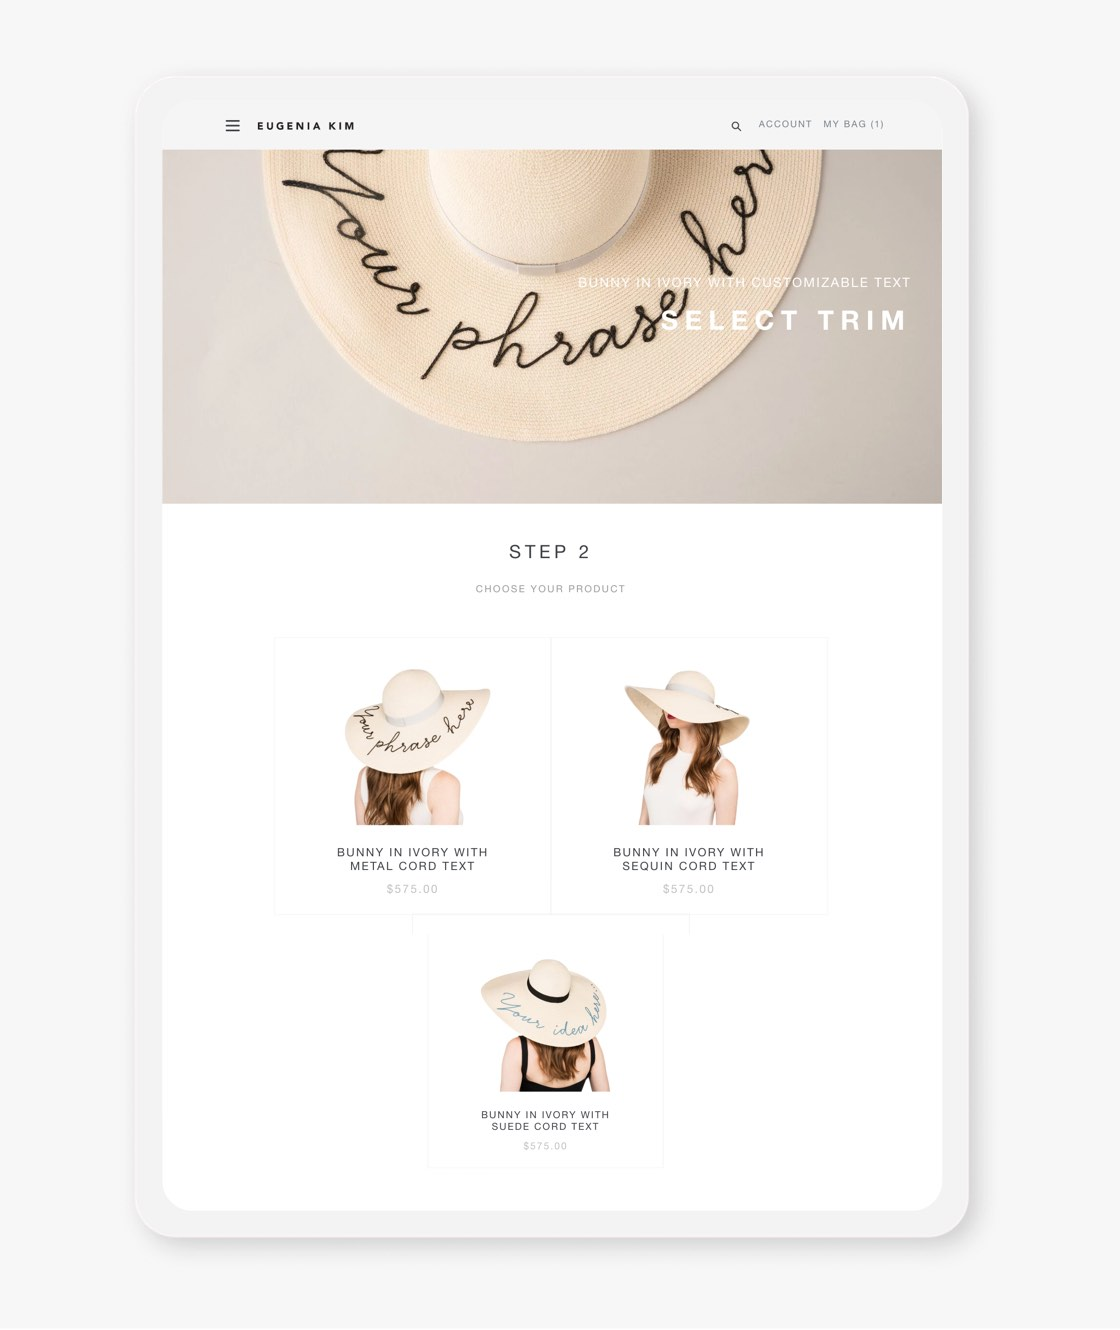 eugenia kim website hat customization page on tablet